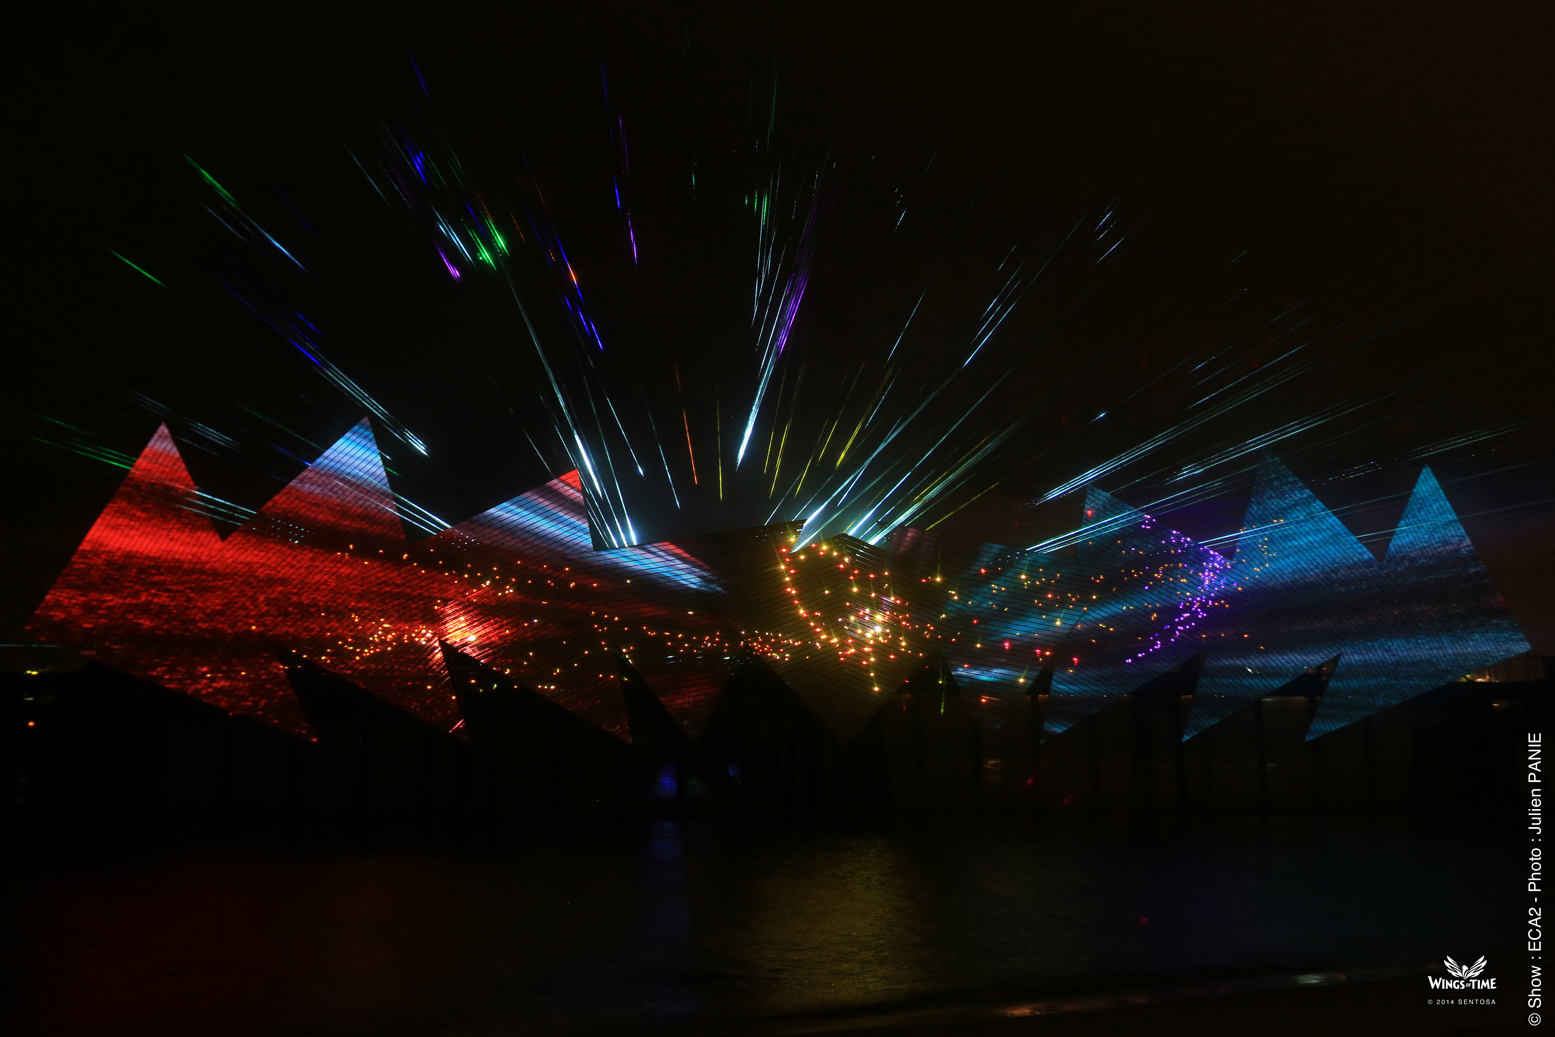 Be dazzled by the state-of-the- art lasers, robotic water fountains and giant water jets.